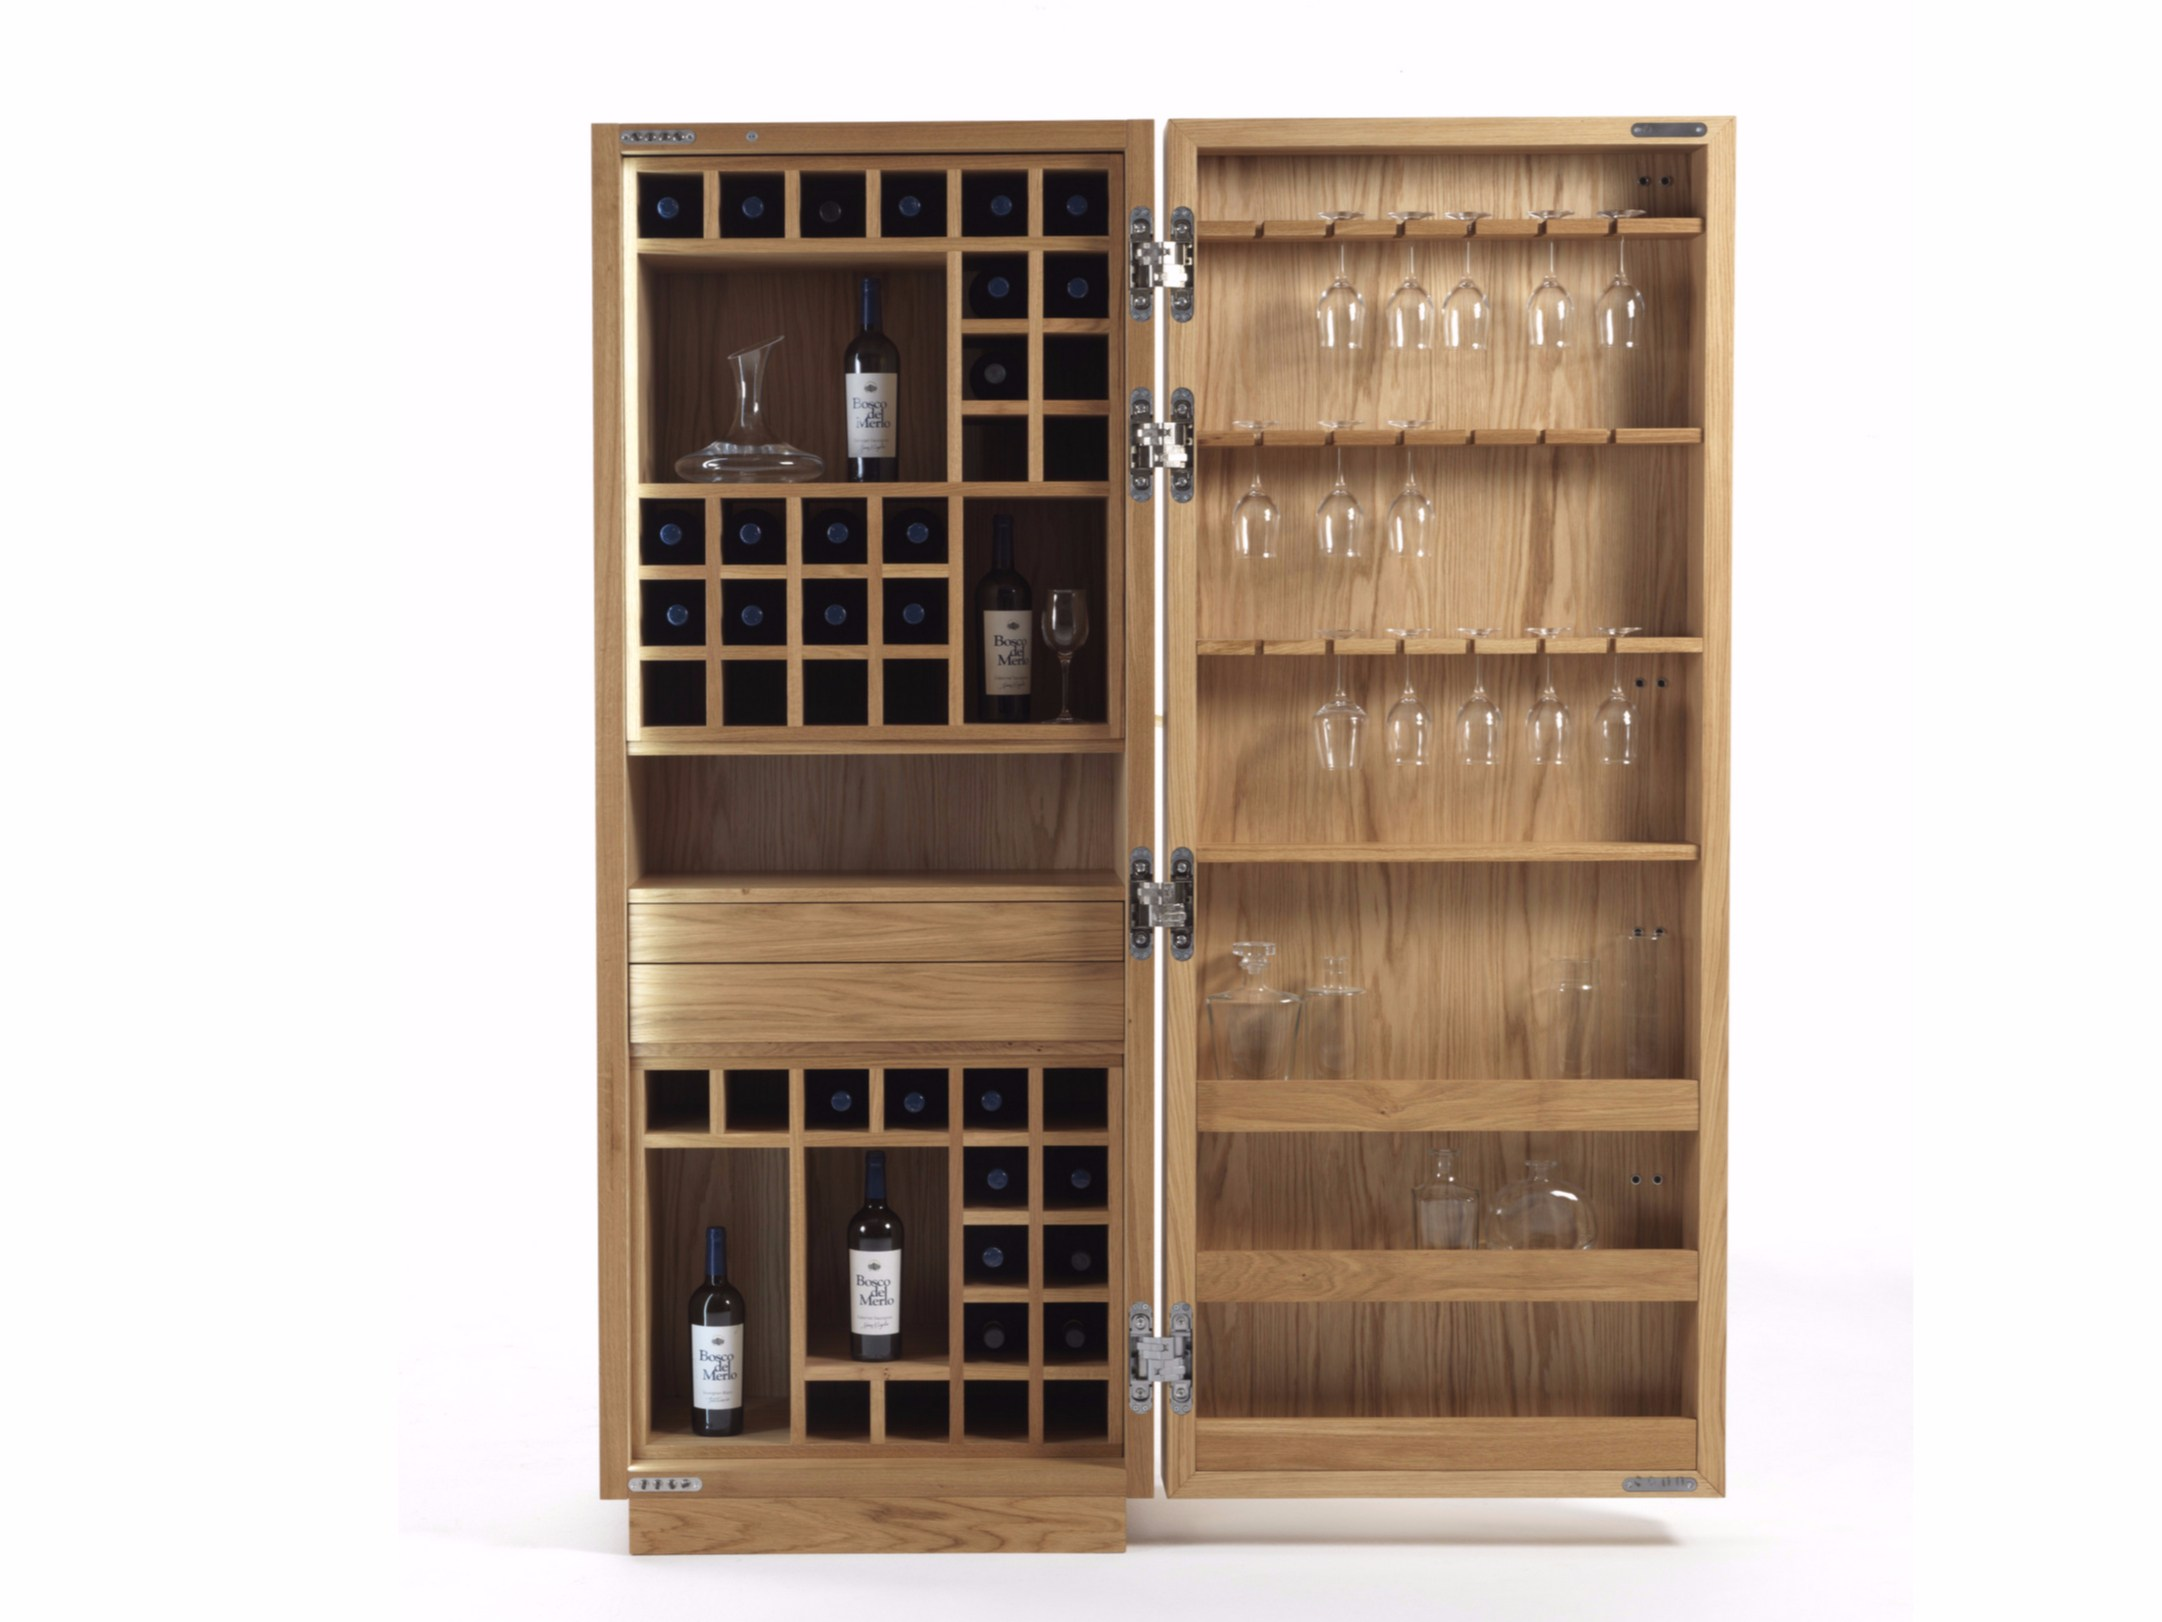 Mueble bar de madera cambusa wine small wine small jumbo for Bar de madera usado